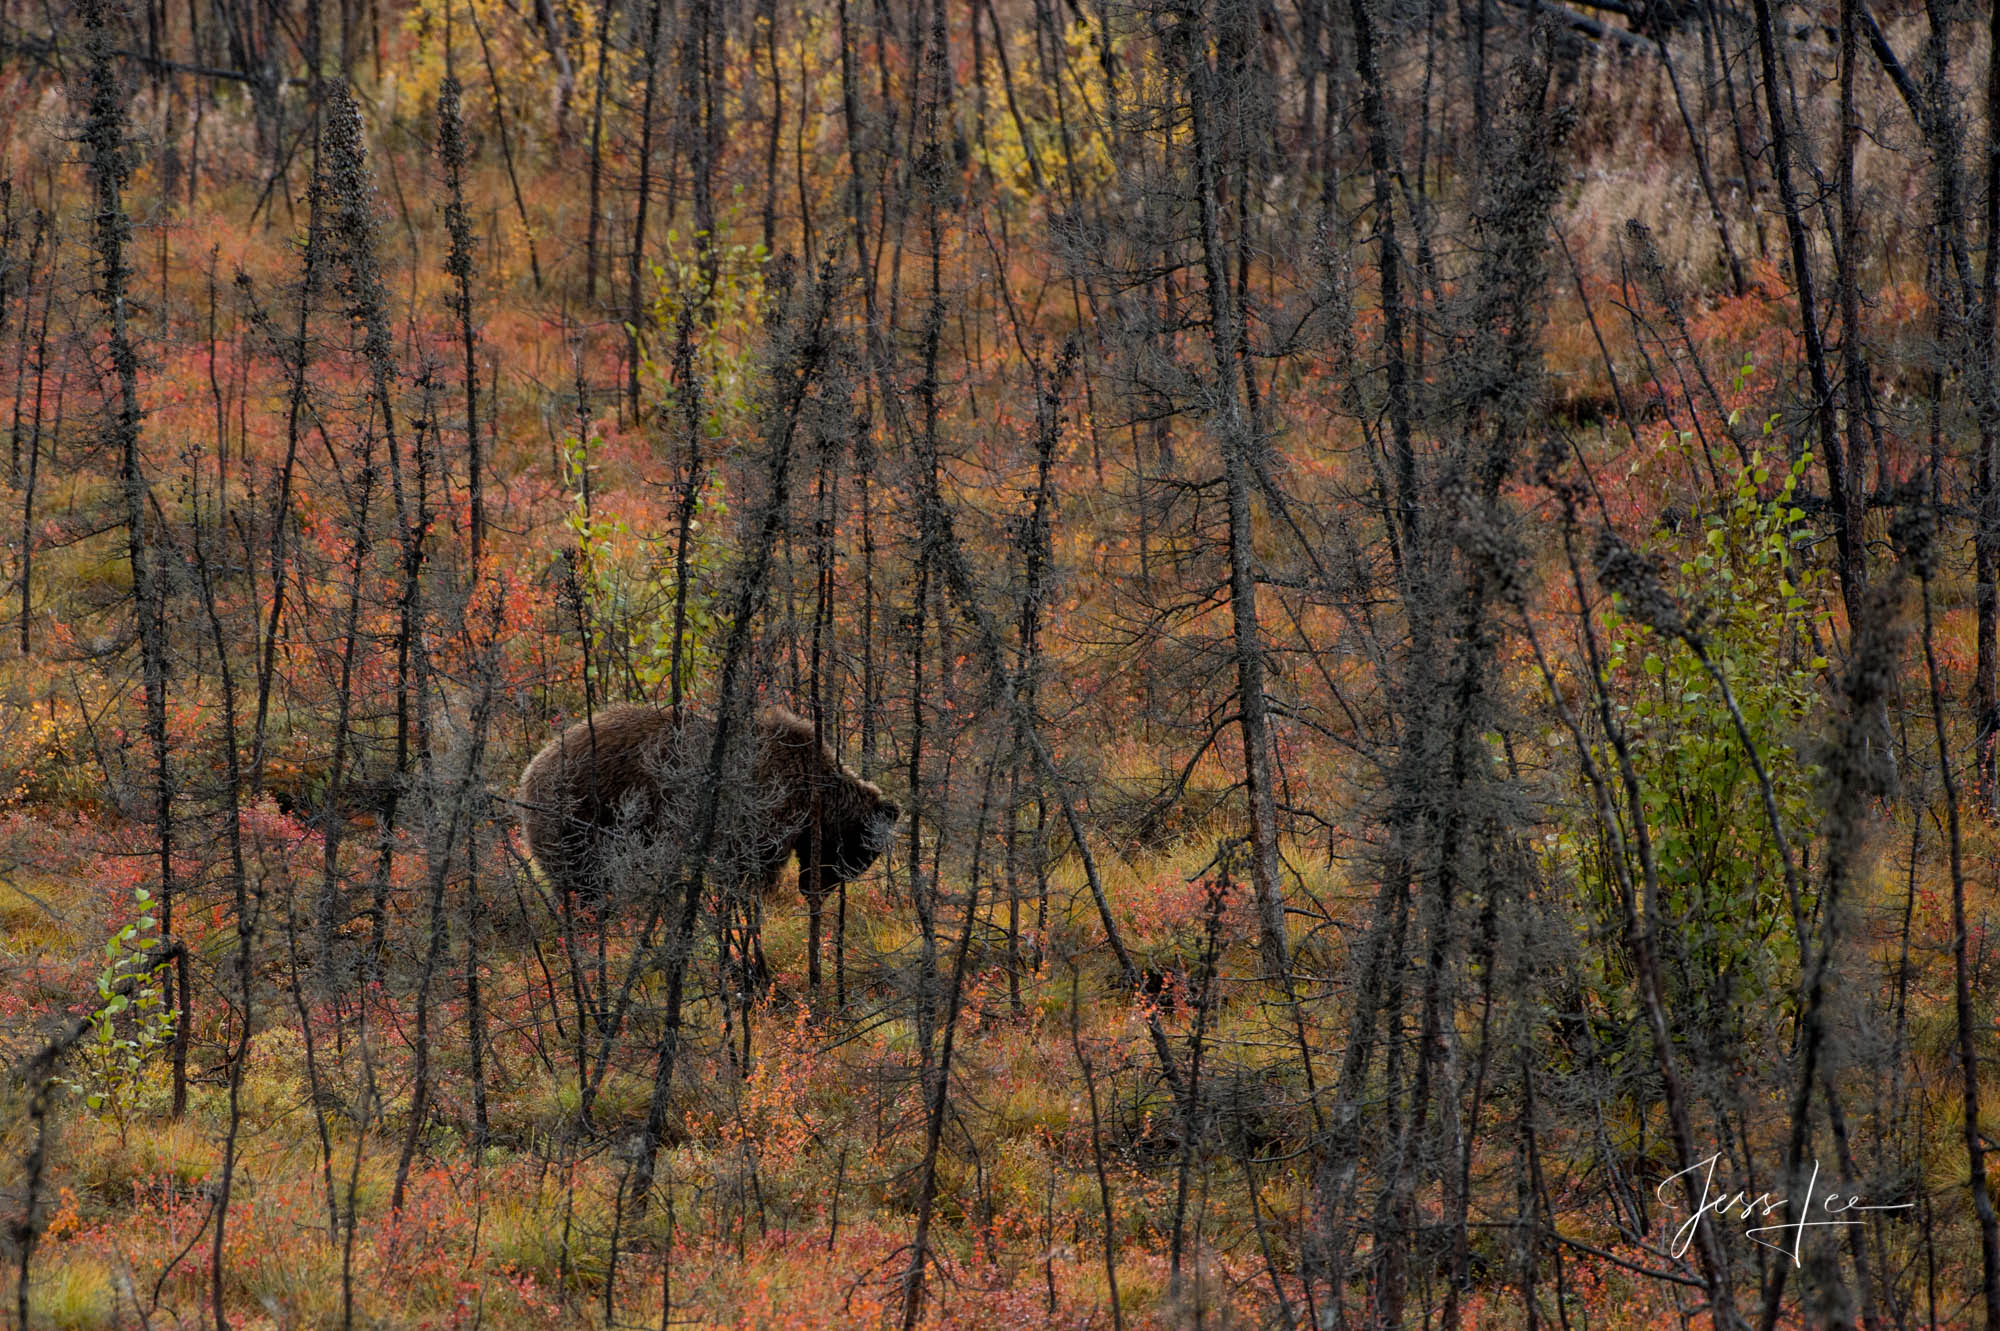 Grizzly searching for a meal in the Alaskan forest.